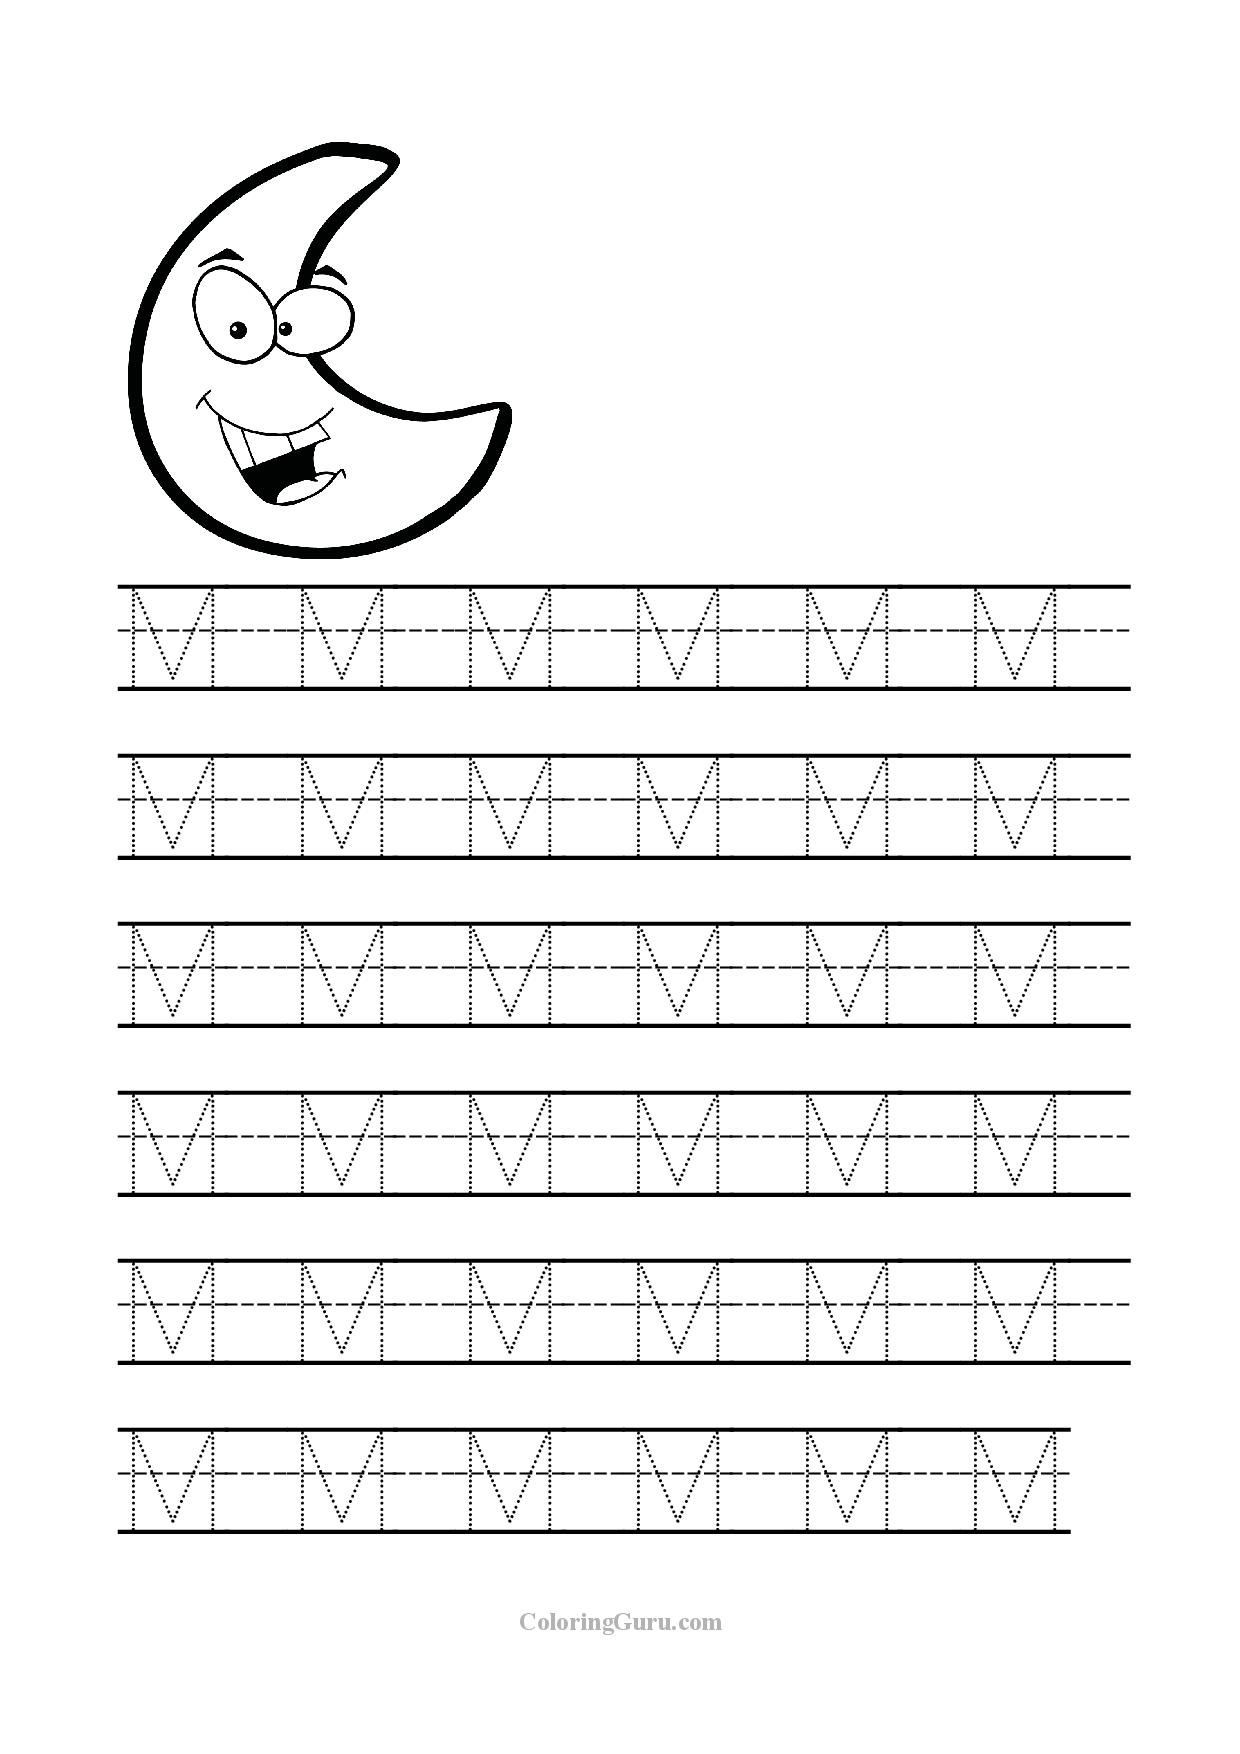 M Worksheets Preschool Free Printable Tracing Letter M Worksheets for Preschool